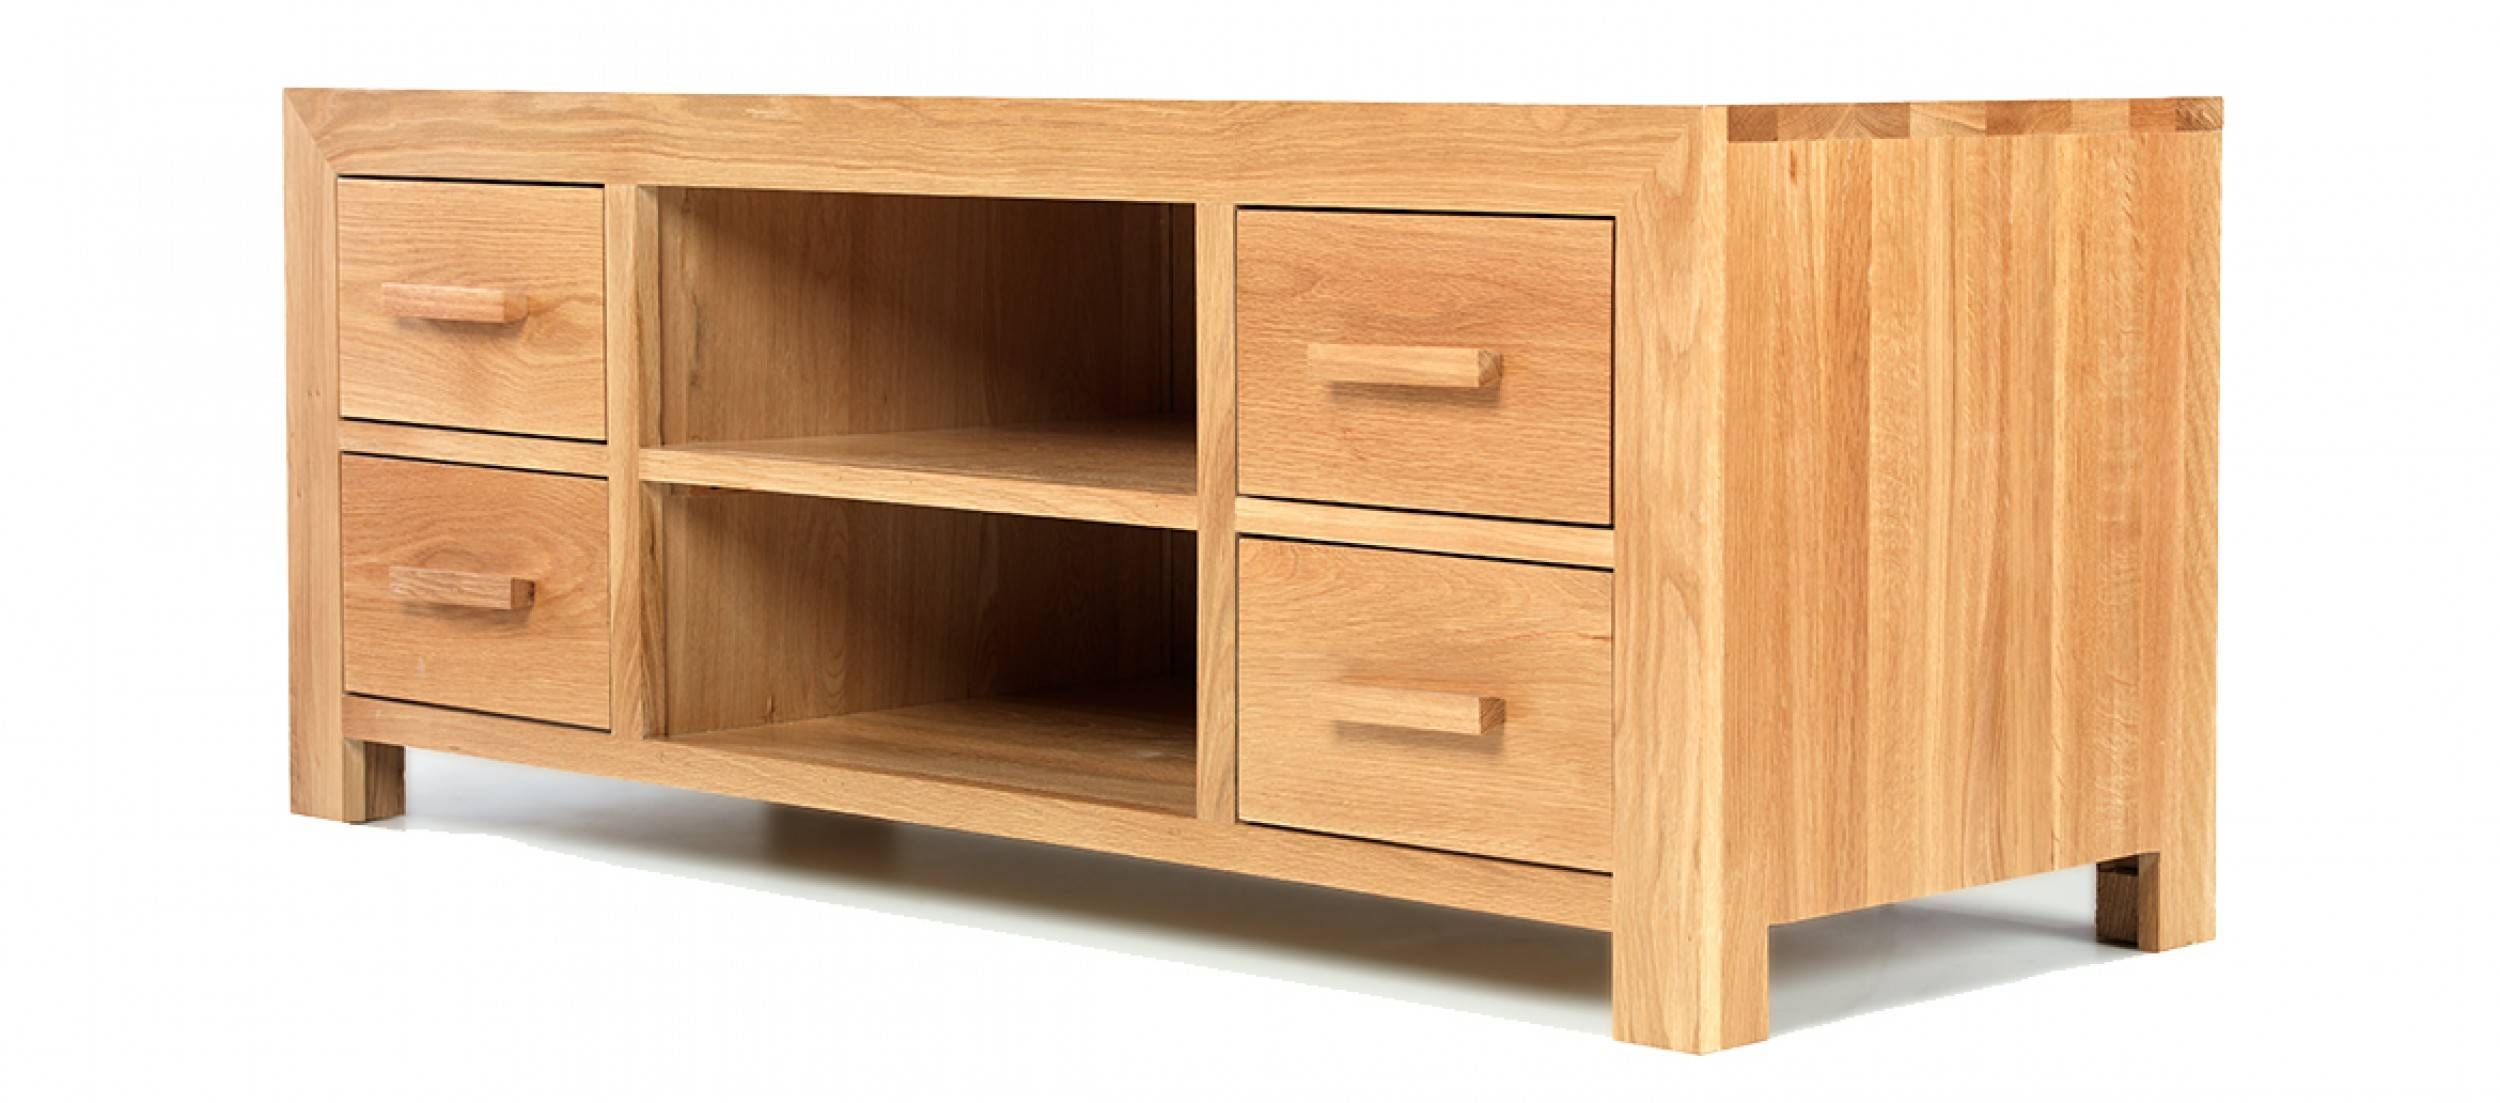 Cube Oak Plasma Tv Stand | Quercus Living Intended For Plasma Tv Stands (View 13 of 15)